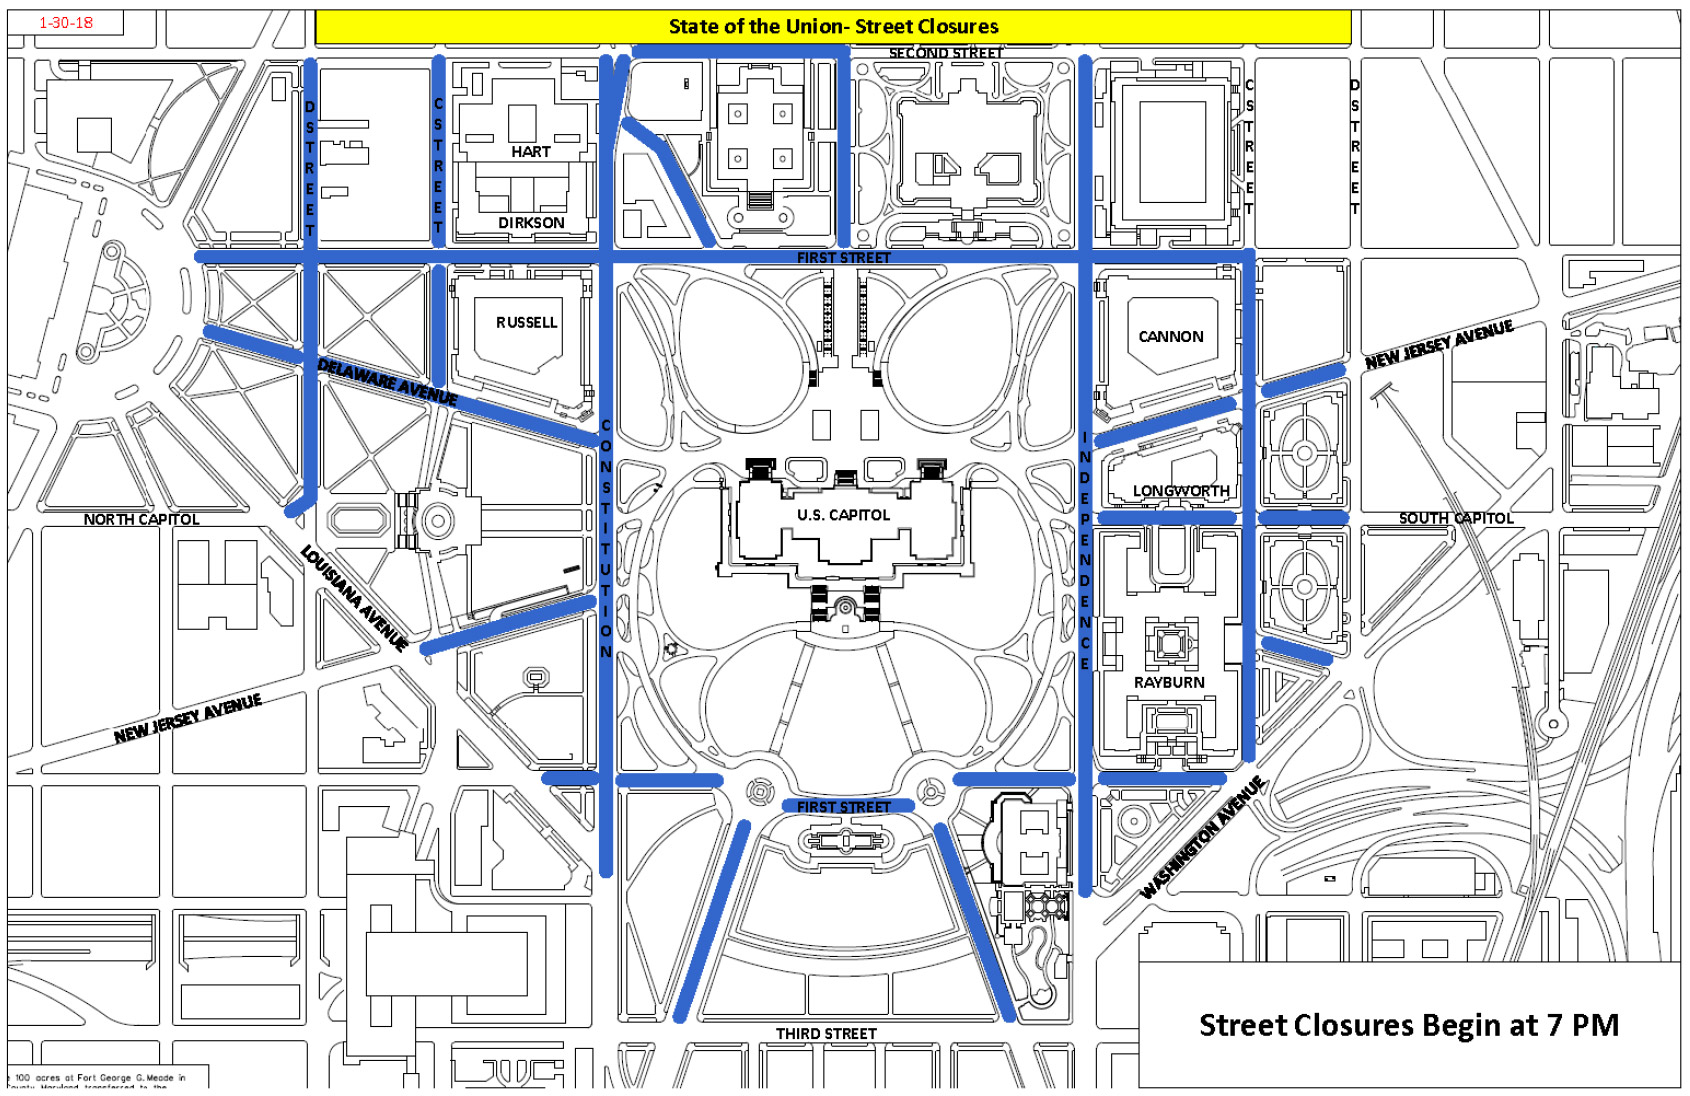 2018 State of the Union street closure map.